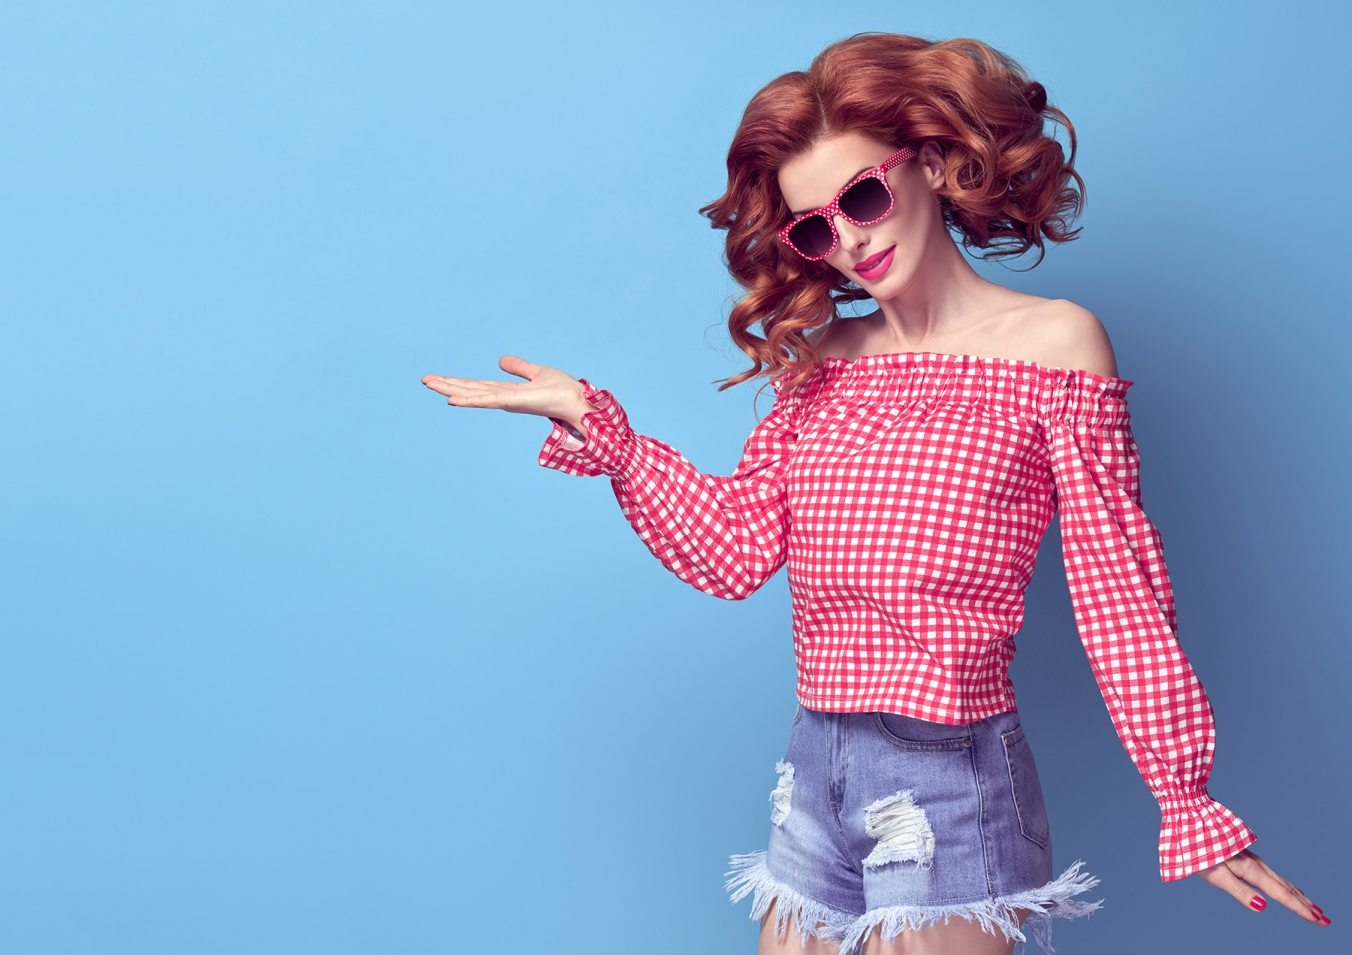 Fashion Pretty PinUp Redhead Girl Smiling Having Fun. Presenting your product. Playful Woman in Pink Summer Bardot Top, Denim shorts, Sunglasses. Trendy Curly hairstyle